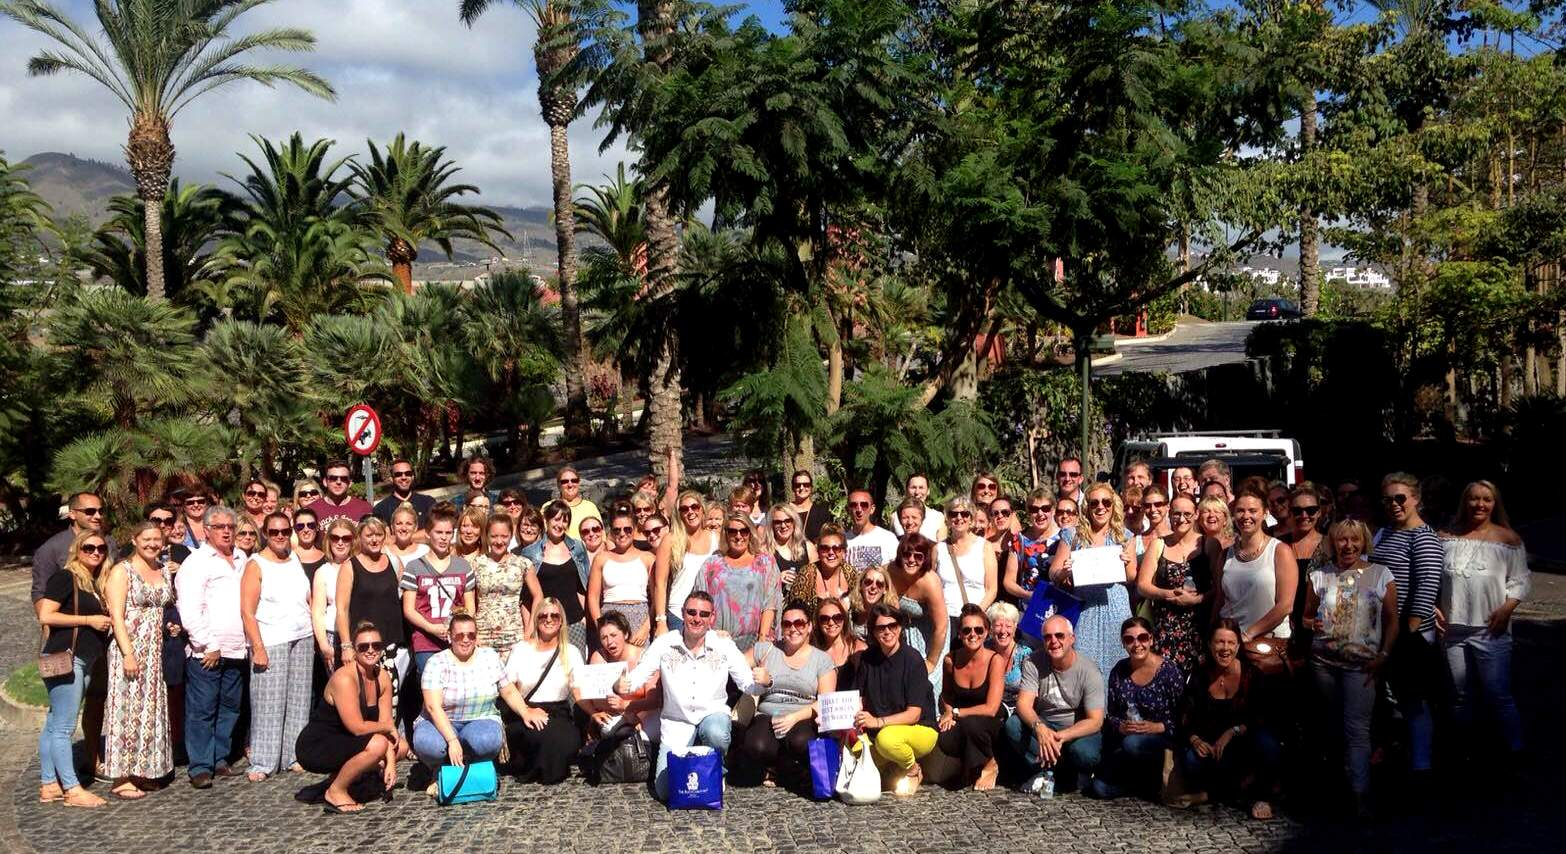 ITC takes all staff on luxury holiday to Tenerife